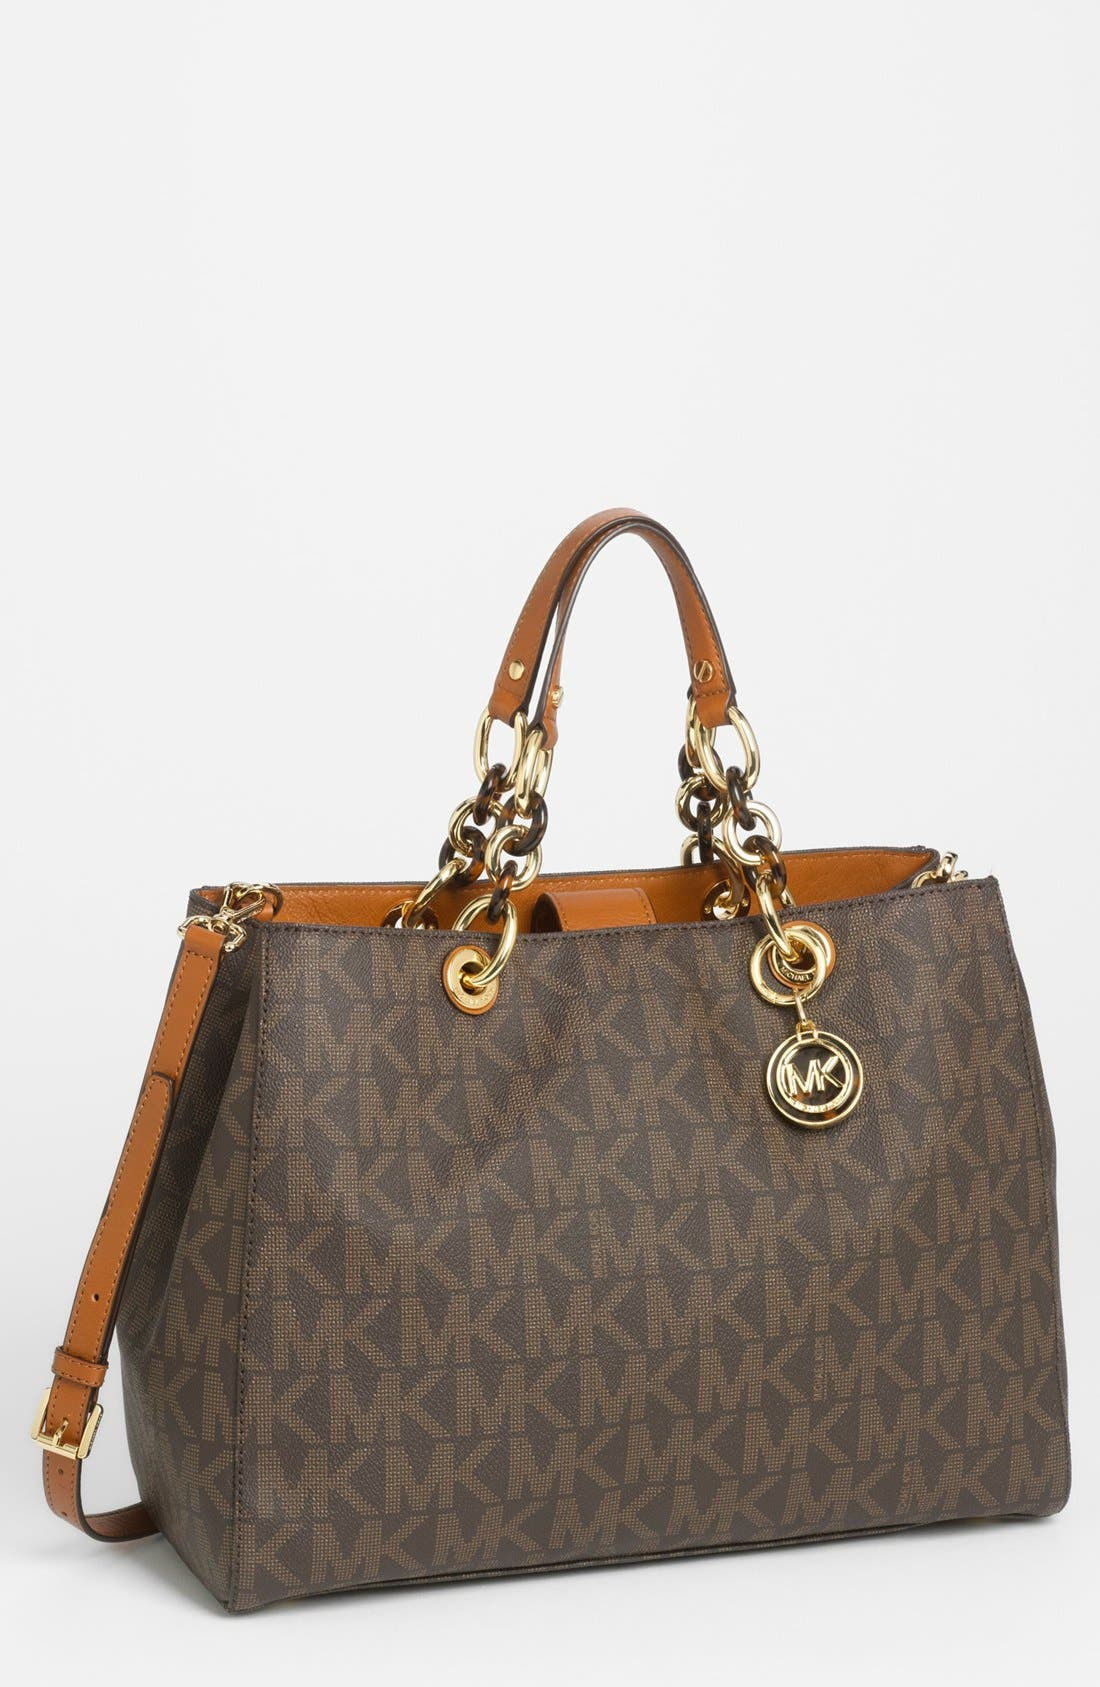 Alternate Image 1 Selected - MICHAEL Michael Kors 'Cynthia' Satchel